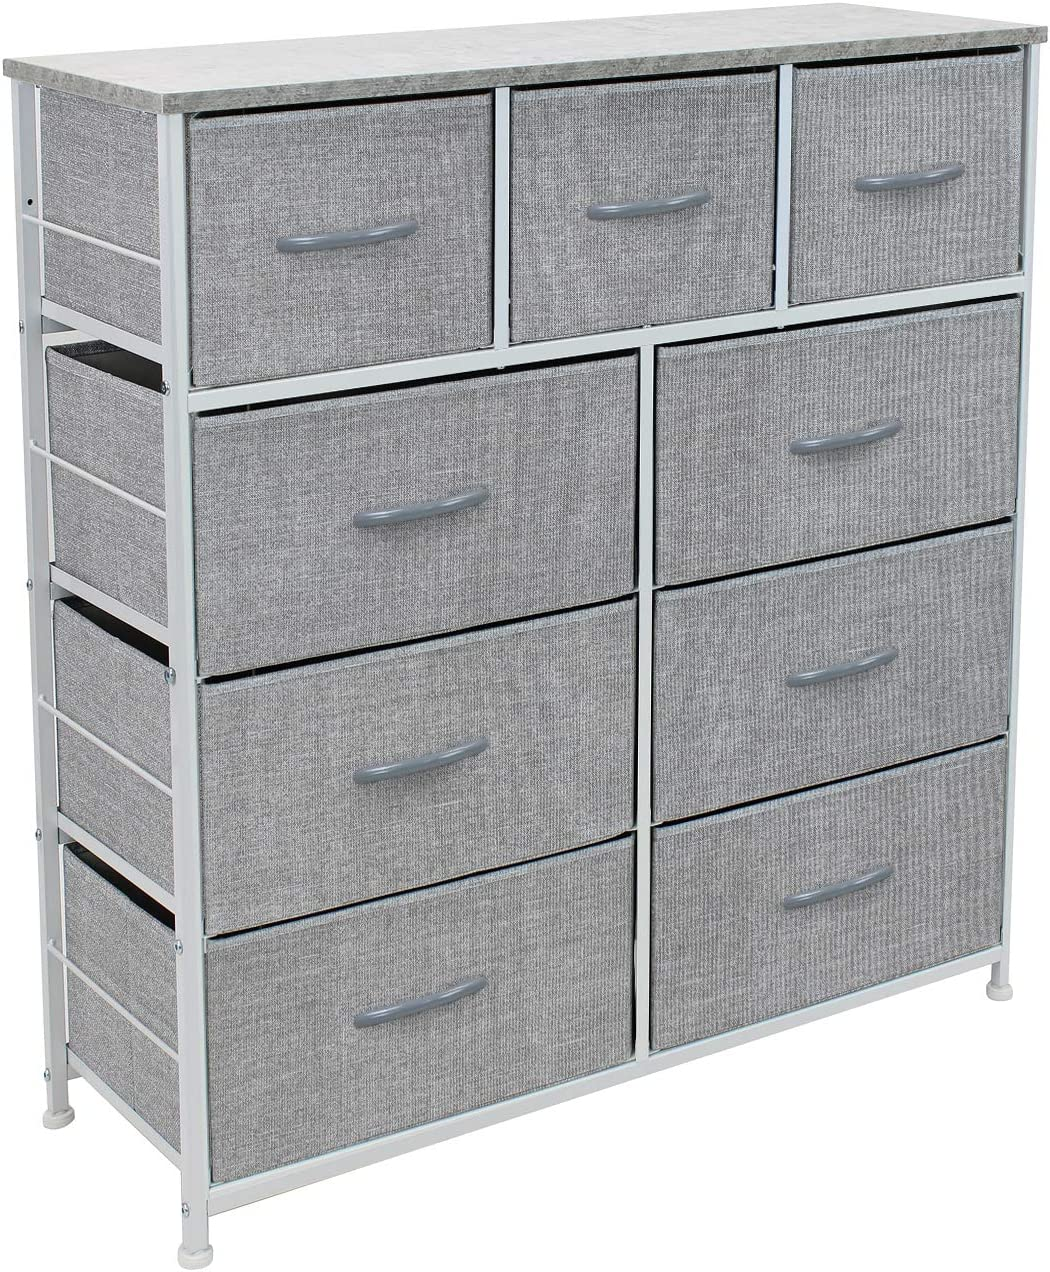 Sorbus Dresser with 9 Drawers - Furniture Storage Chest Tower Unit for Bedroom, Hallway, Closet, Office Organization - Steel Frame, Wood Top, Easy Pull Fabric Bins (Gray)